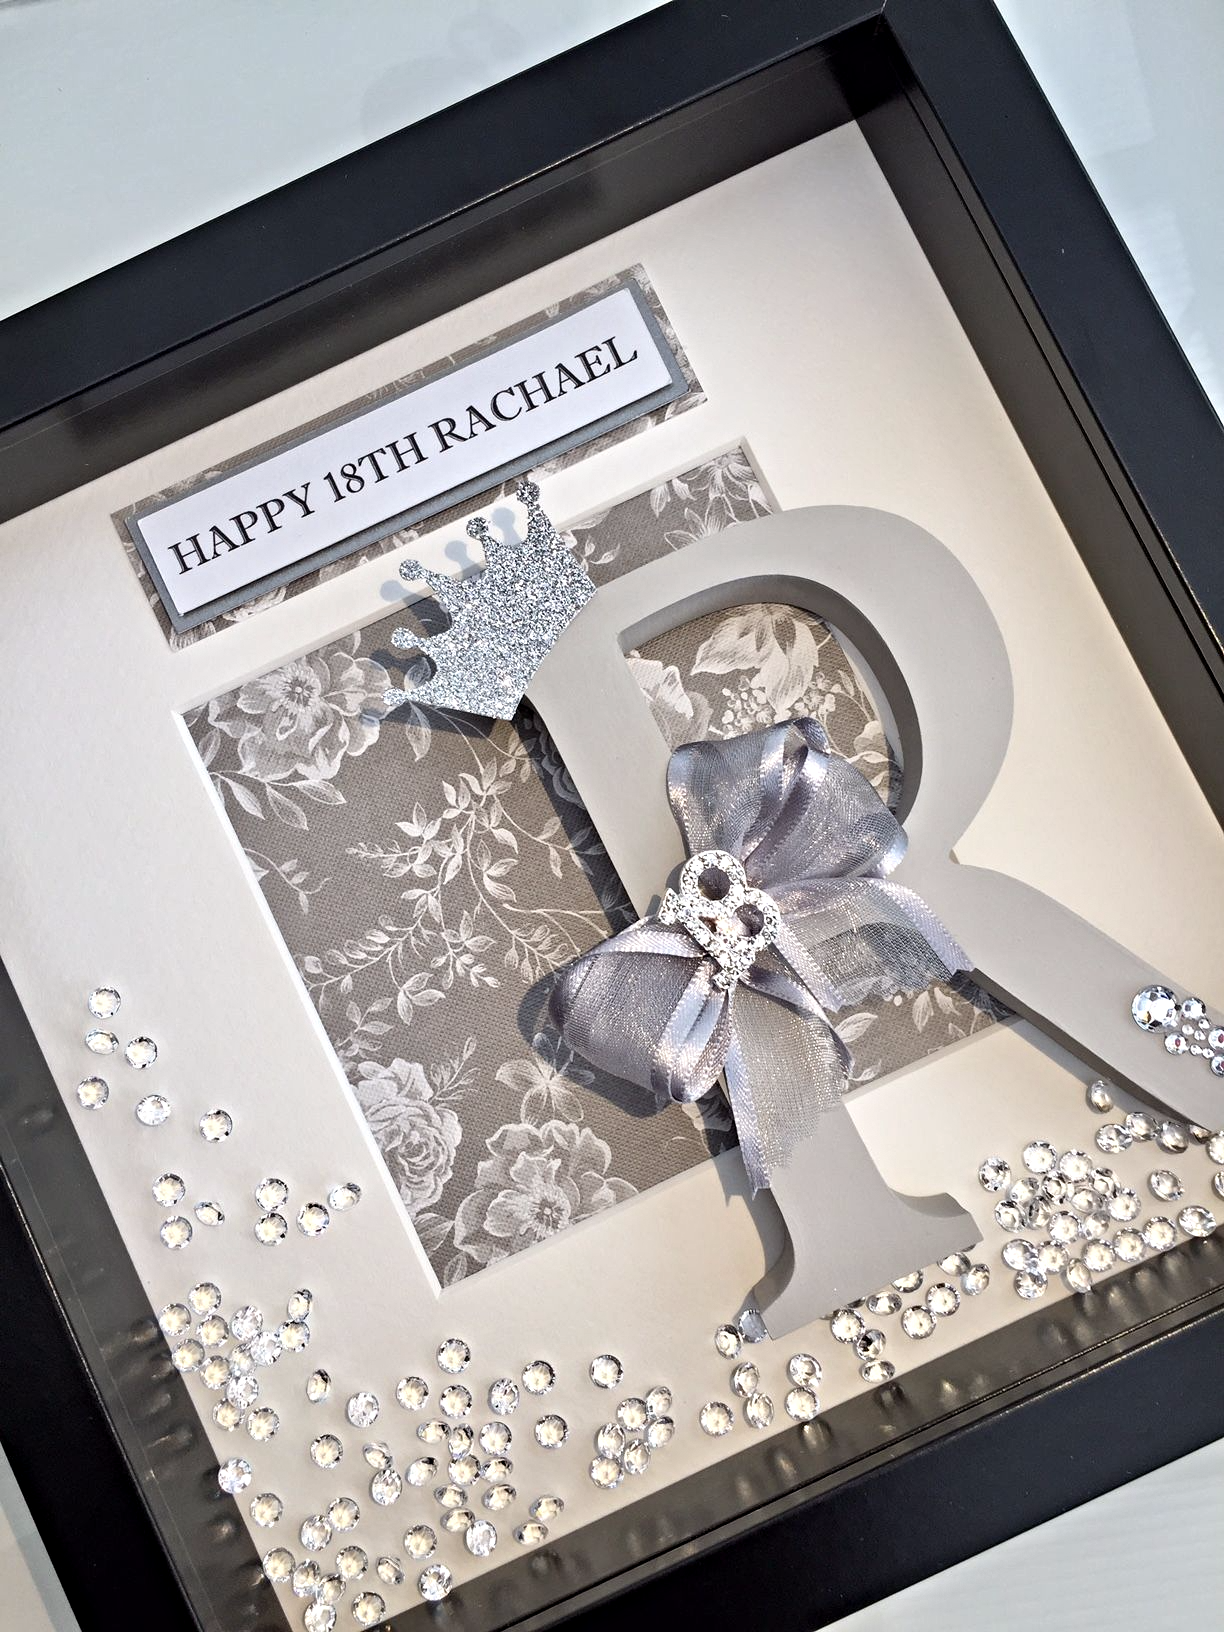 18th Birthday Initial Box Frame | crafts | Pinterest | Initials, Box ...